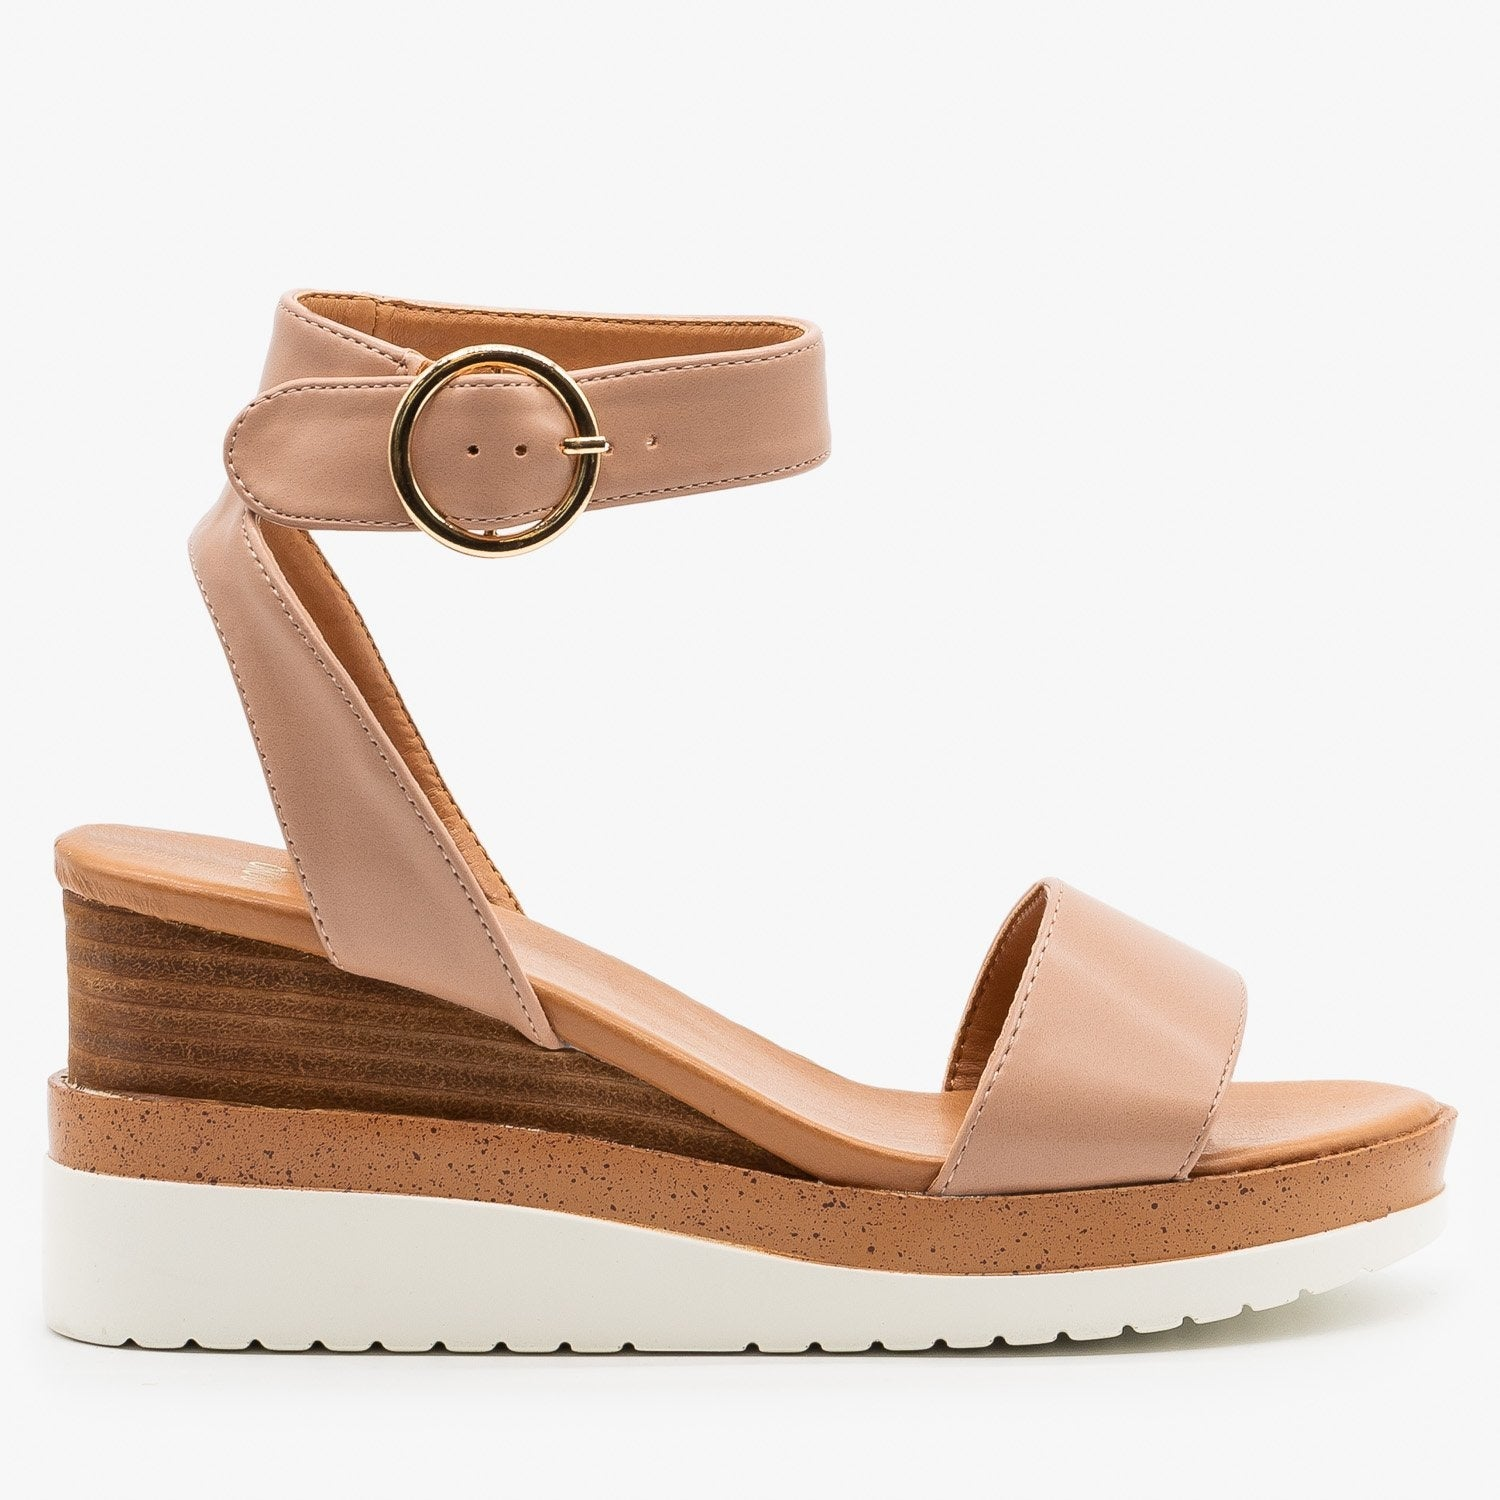 Chic Summer Wedge Sandals - Novo Shoes